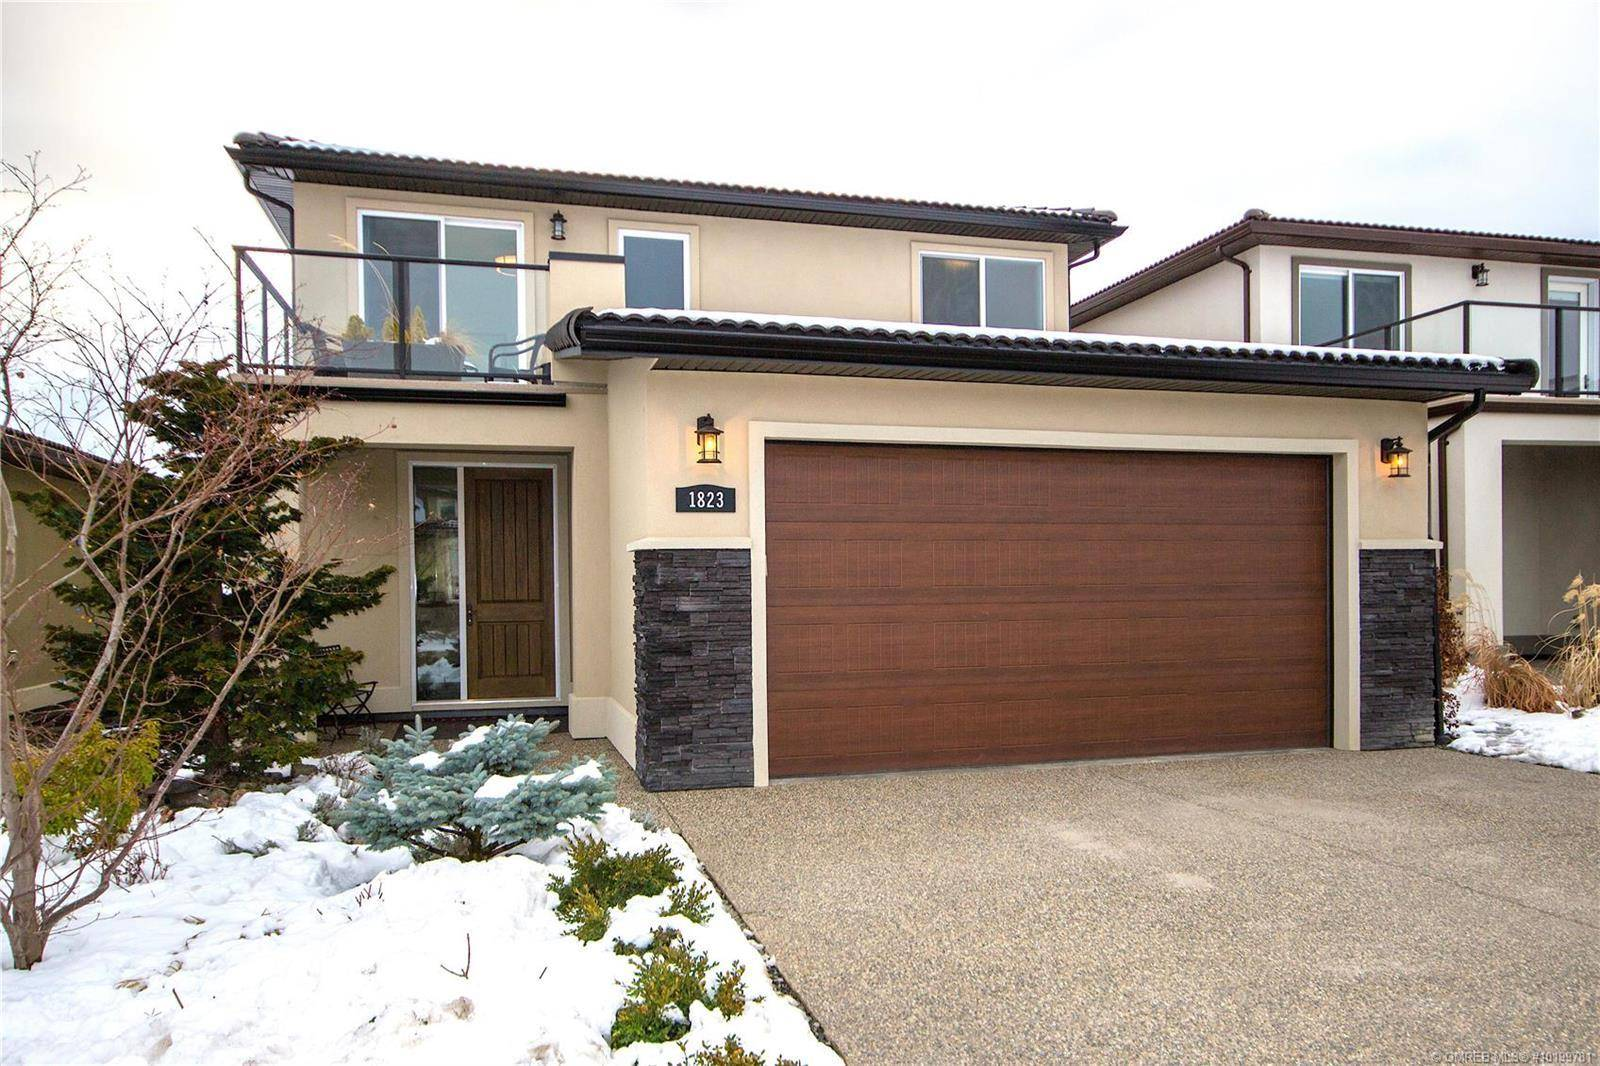 House for sale at 1823 Viewpoint Dr West Kelowna British Columbia - MLS: 10199781